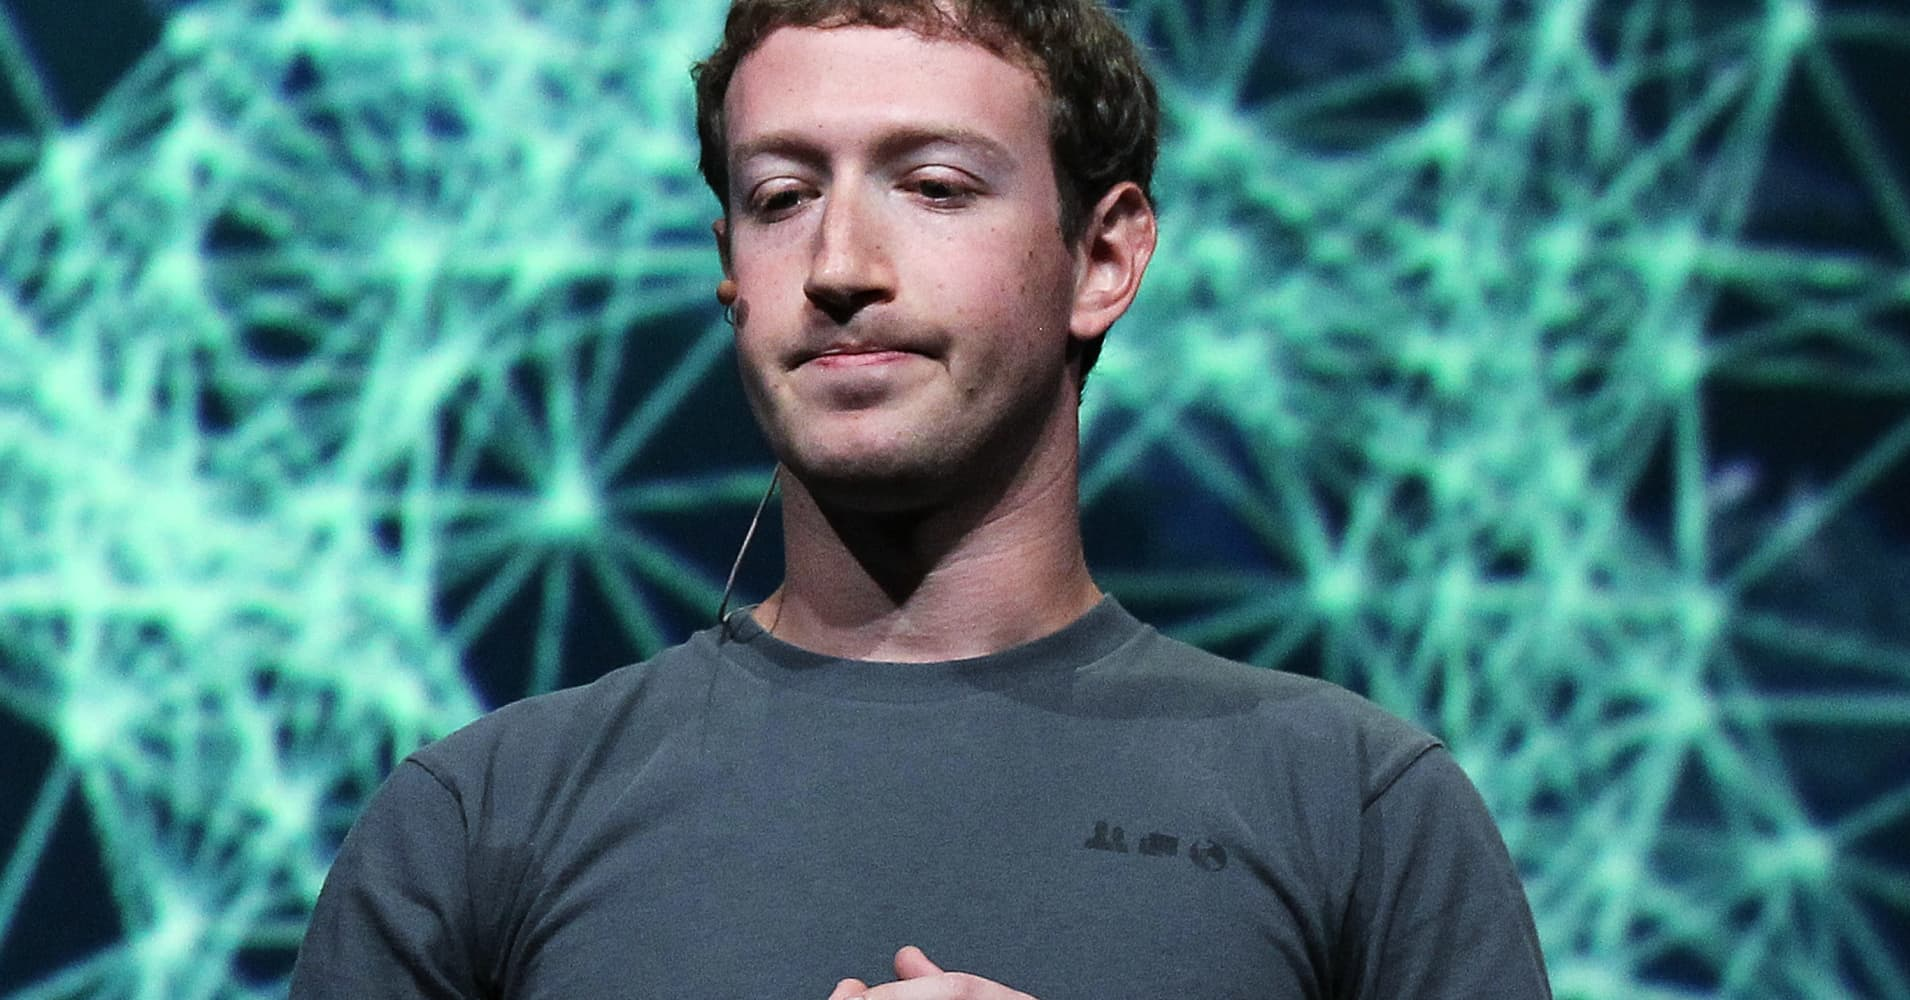 Morale at Facebook is reportedly in the dumps